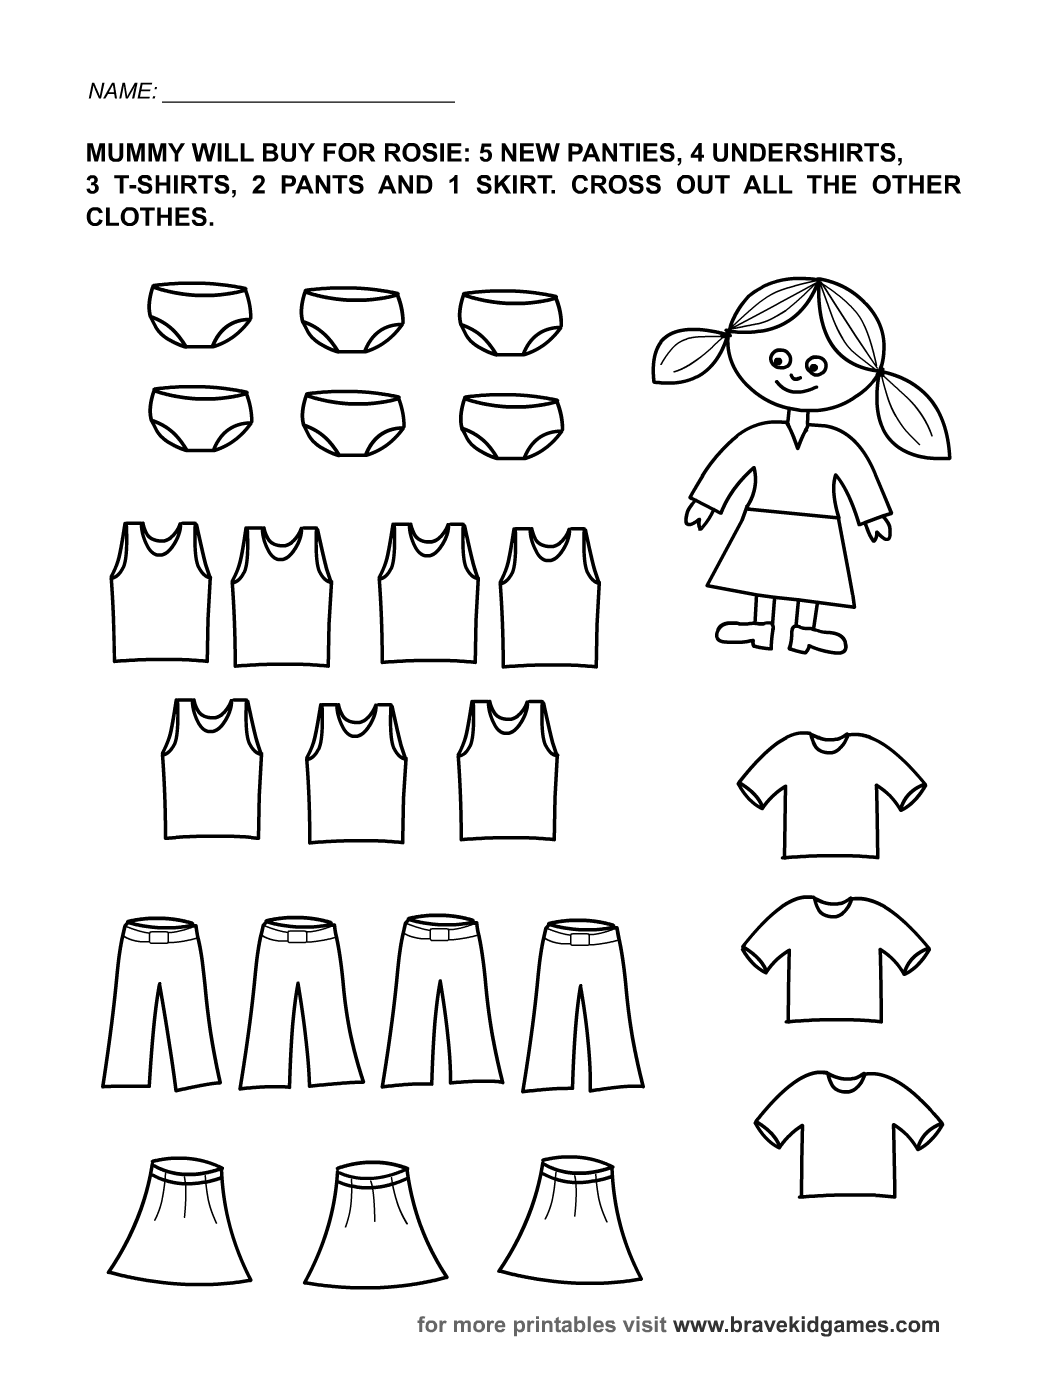 Free Printable Preschool Worksheets For Learning The